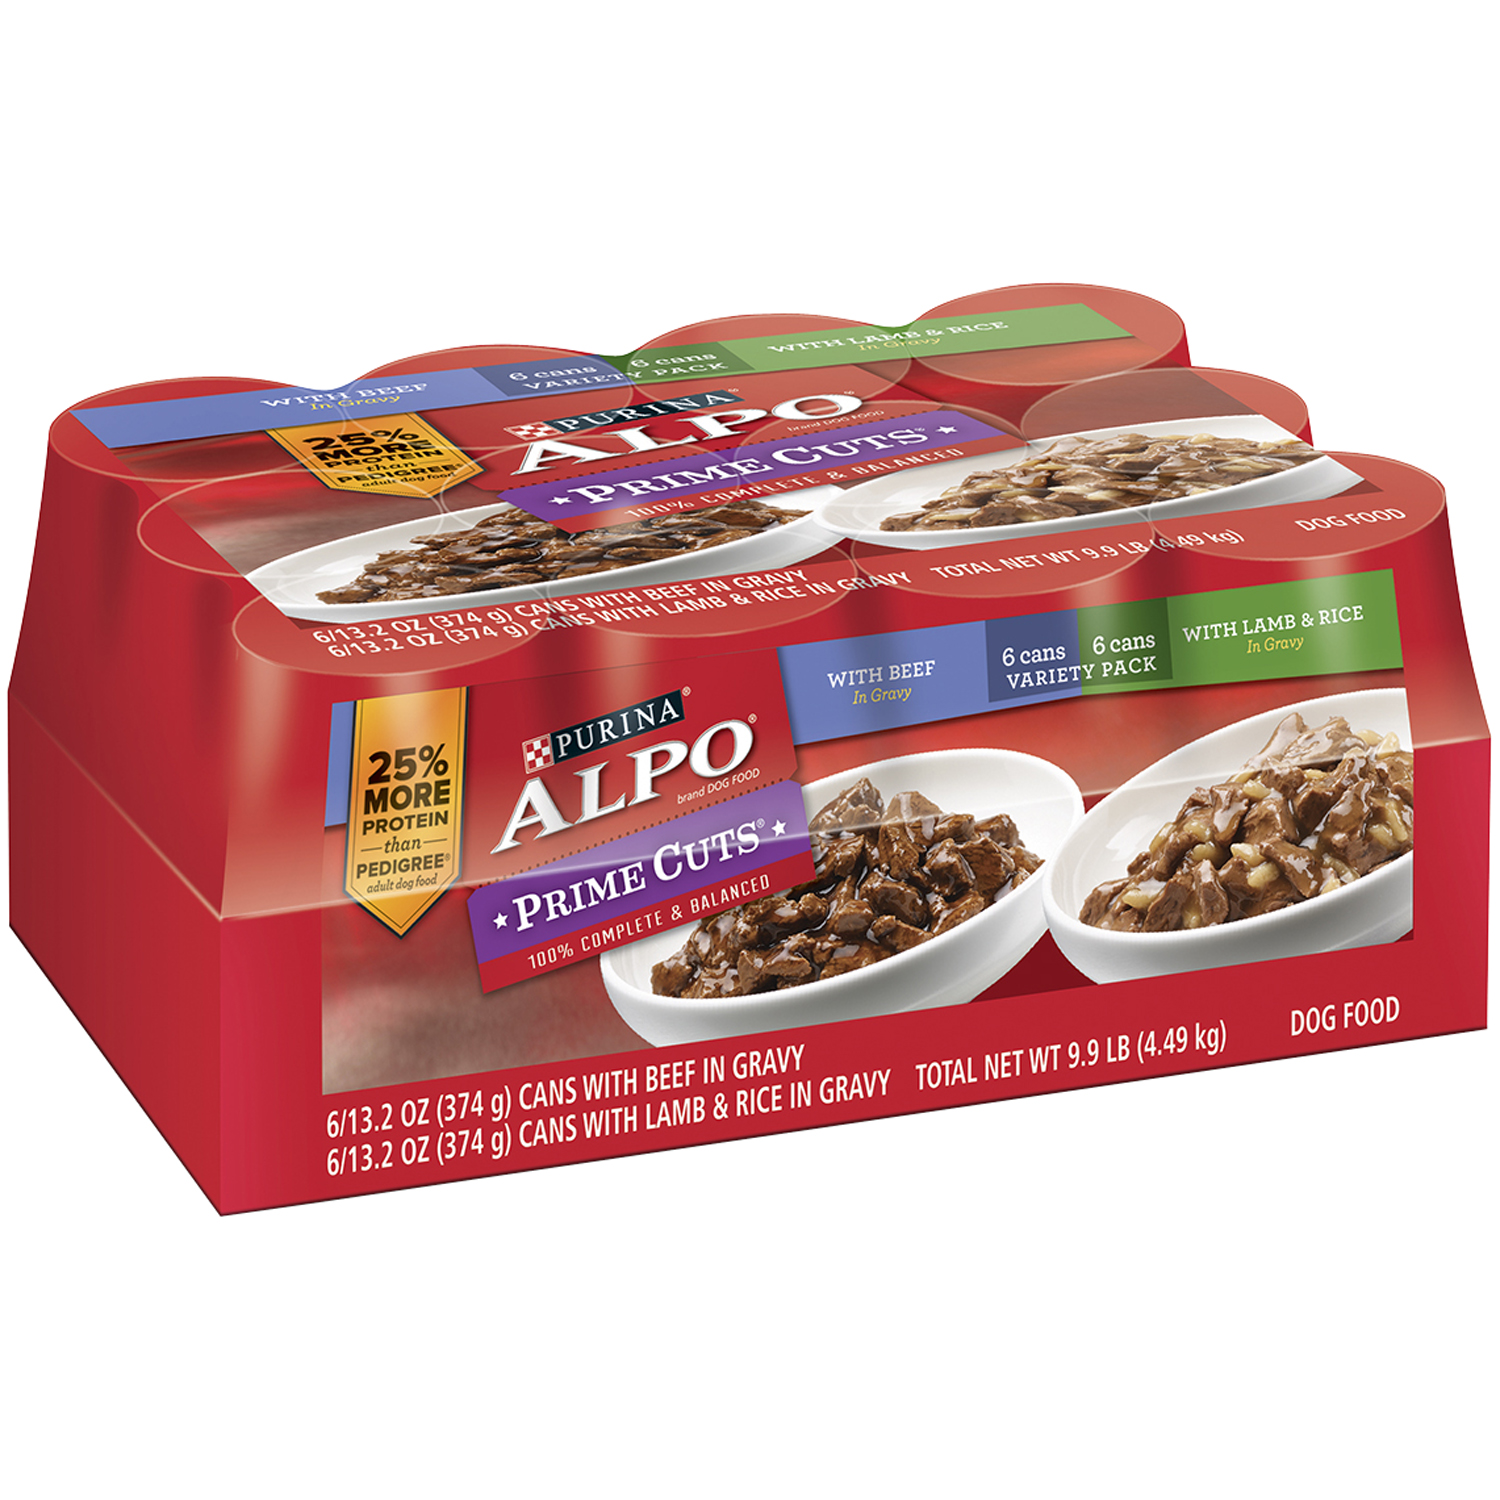 Purina ALPO Prime Cuts Variety Pack Dog Food 12-13.2 oz. Cans